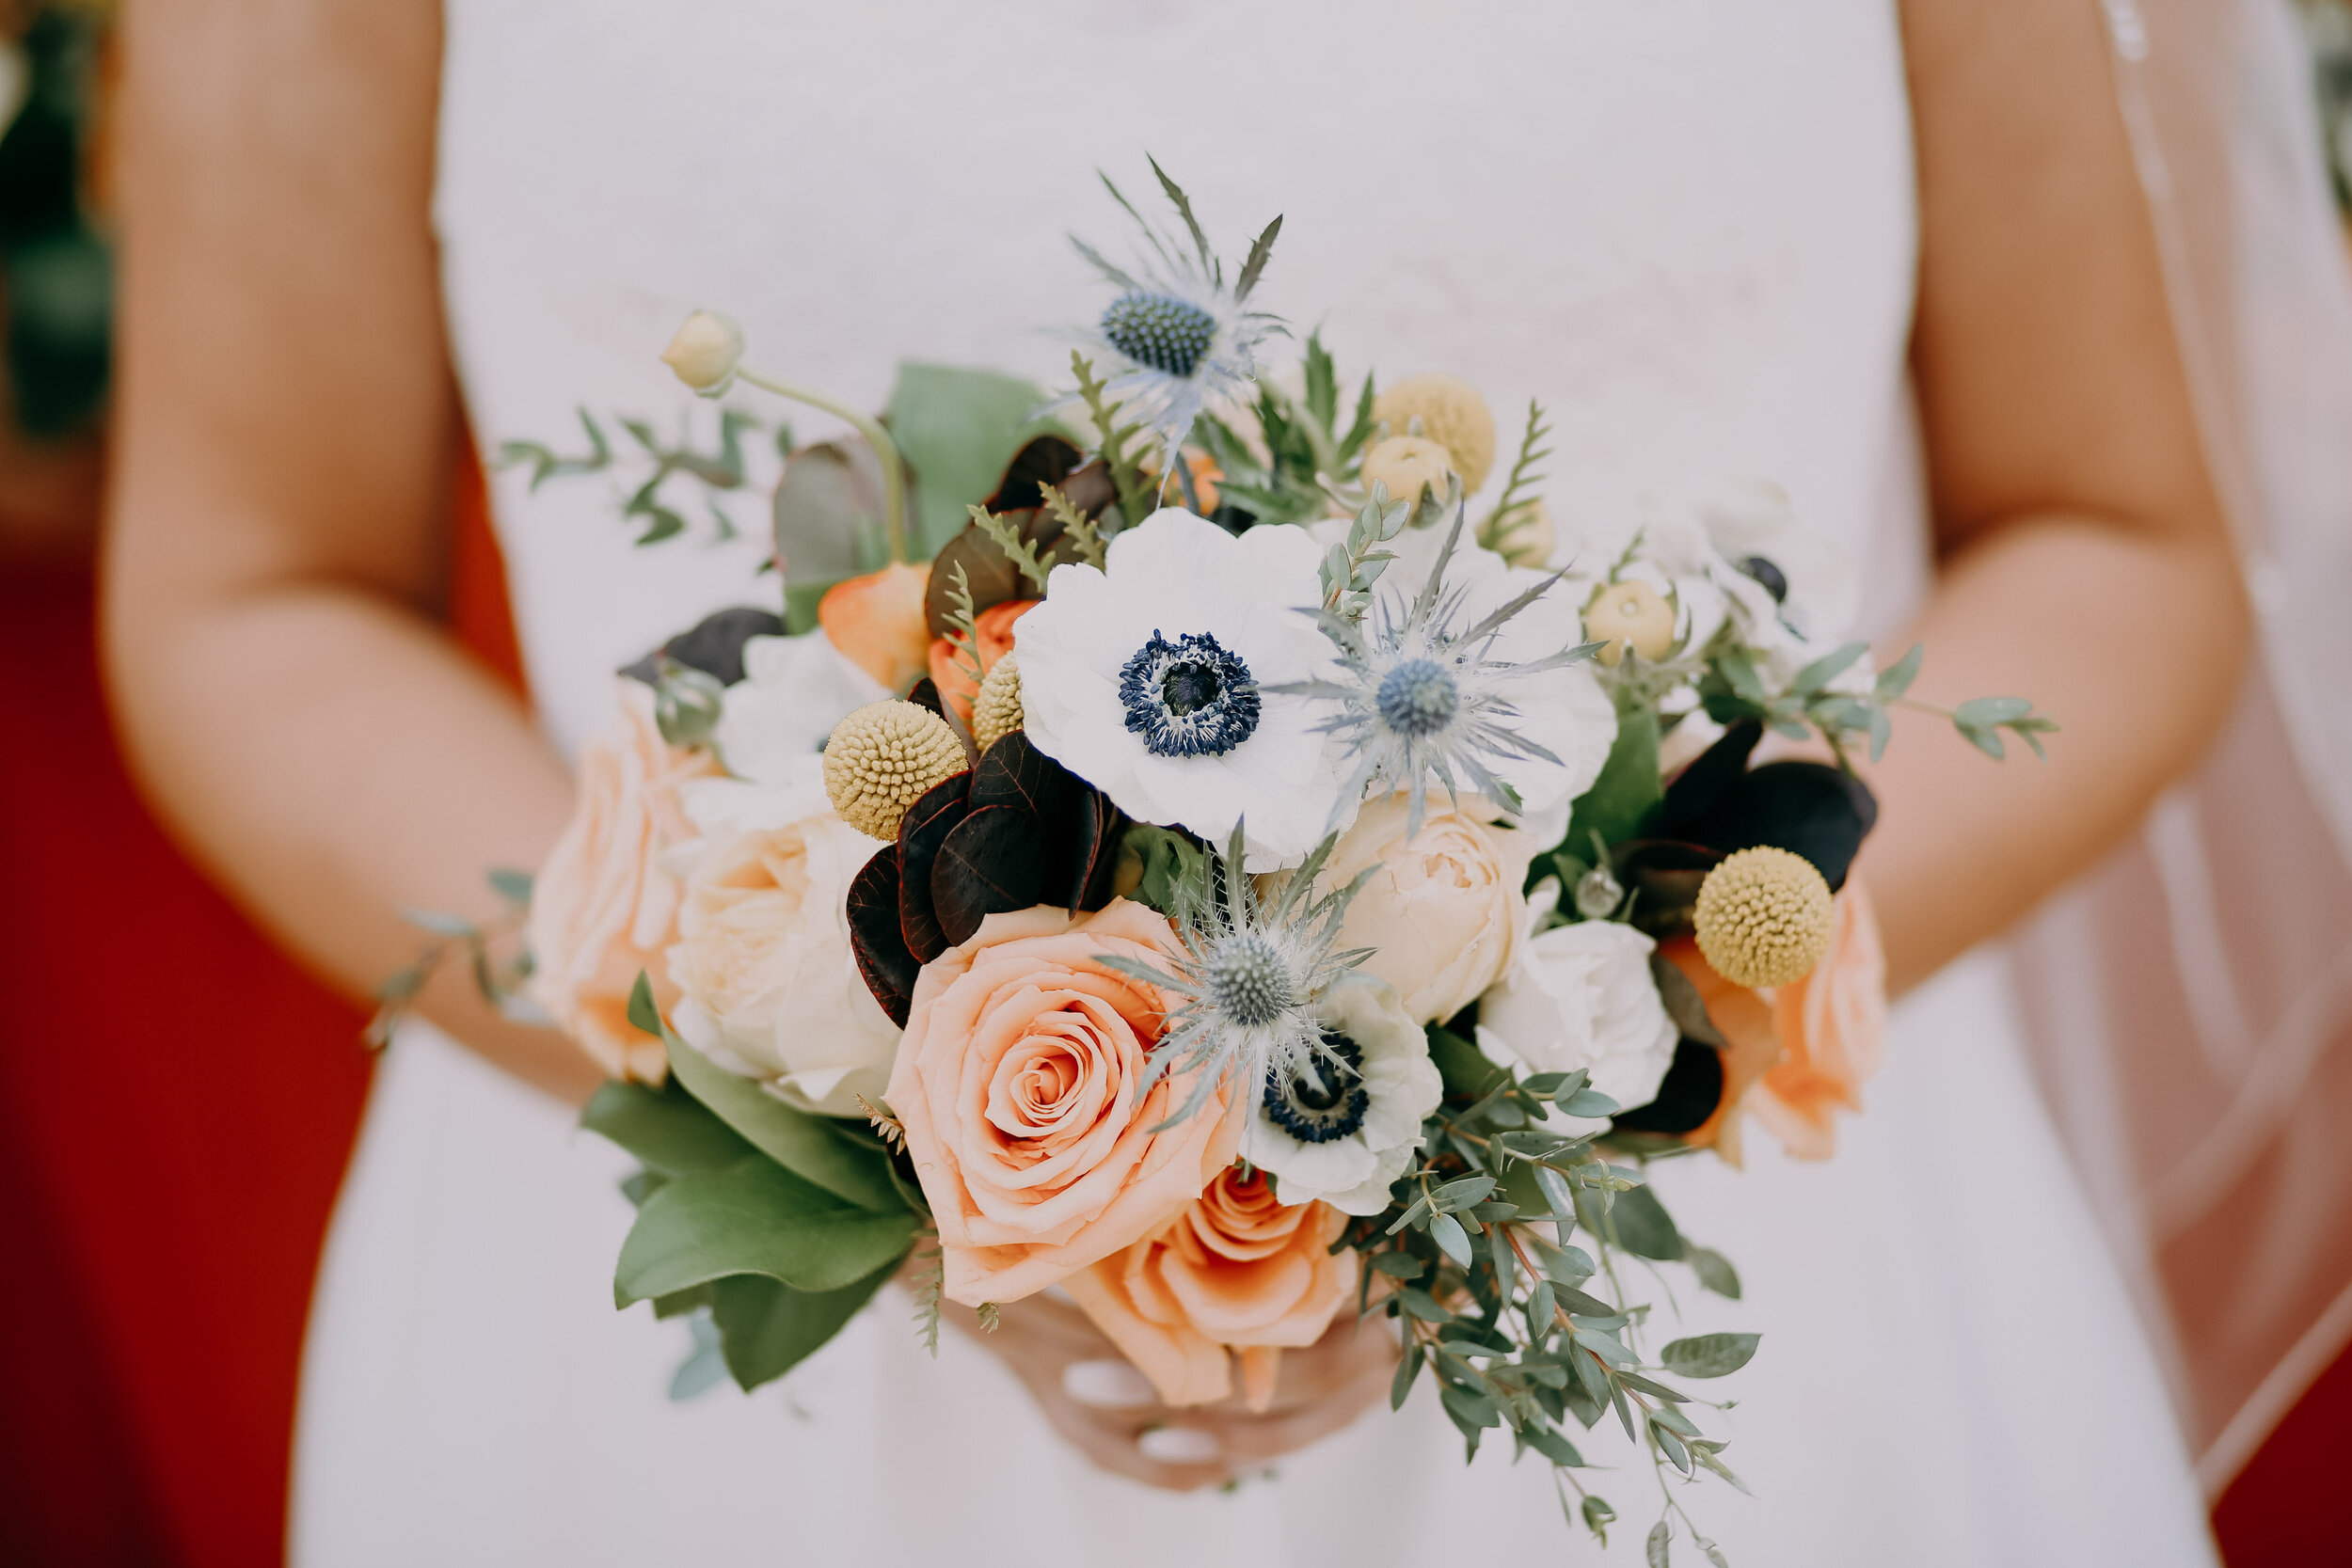 West End Salvage wedding in Des Moines iowa, bride with bouquet of coral and blue flowers with poppies and orange roses, and eucalyptus at vintage wedding event in Des Moines Iowa